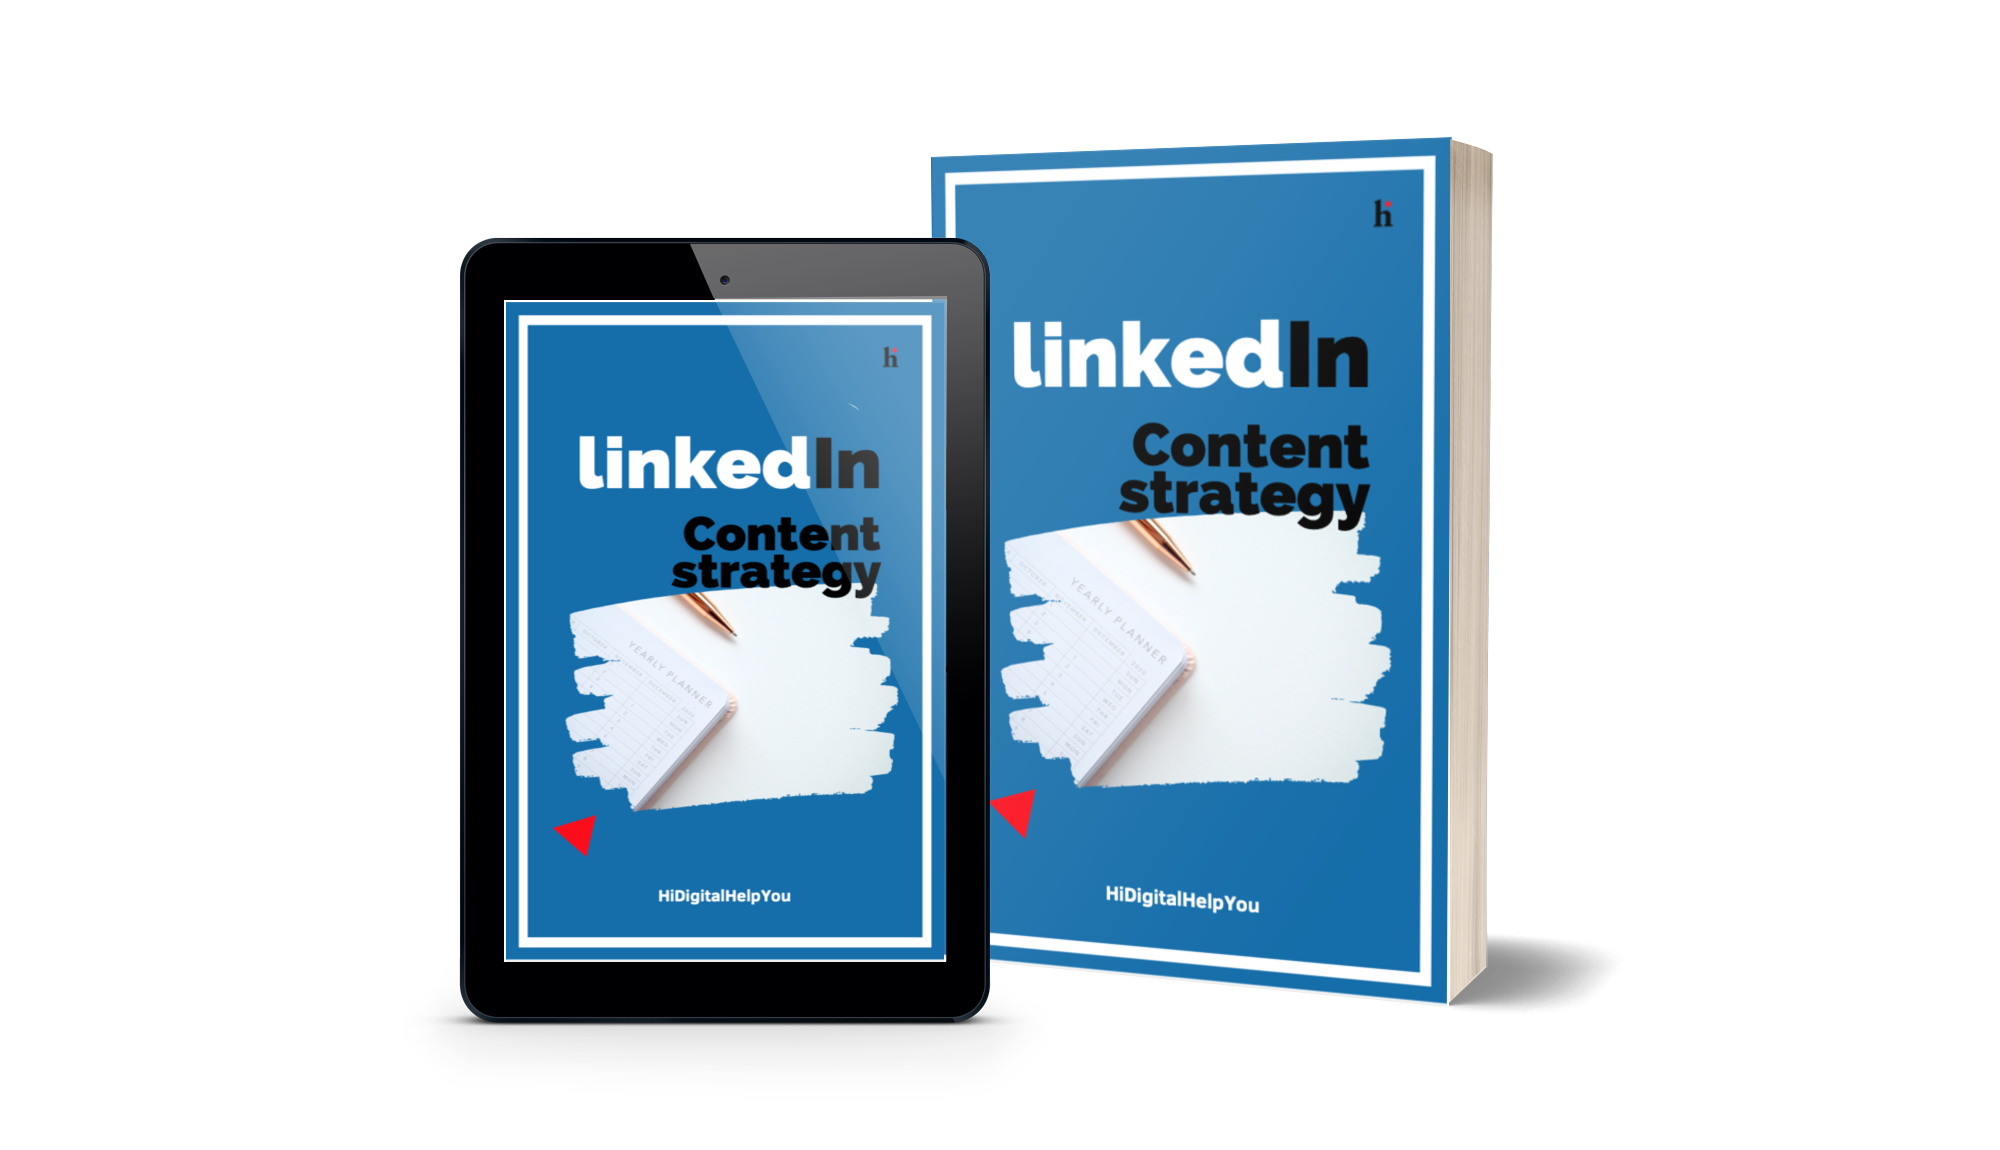 Content Strategy LinkedIn